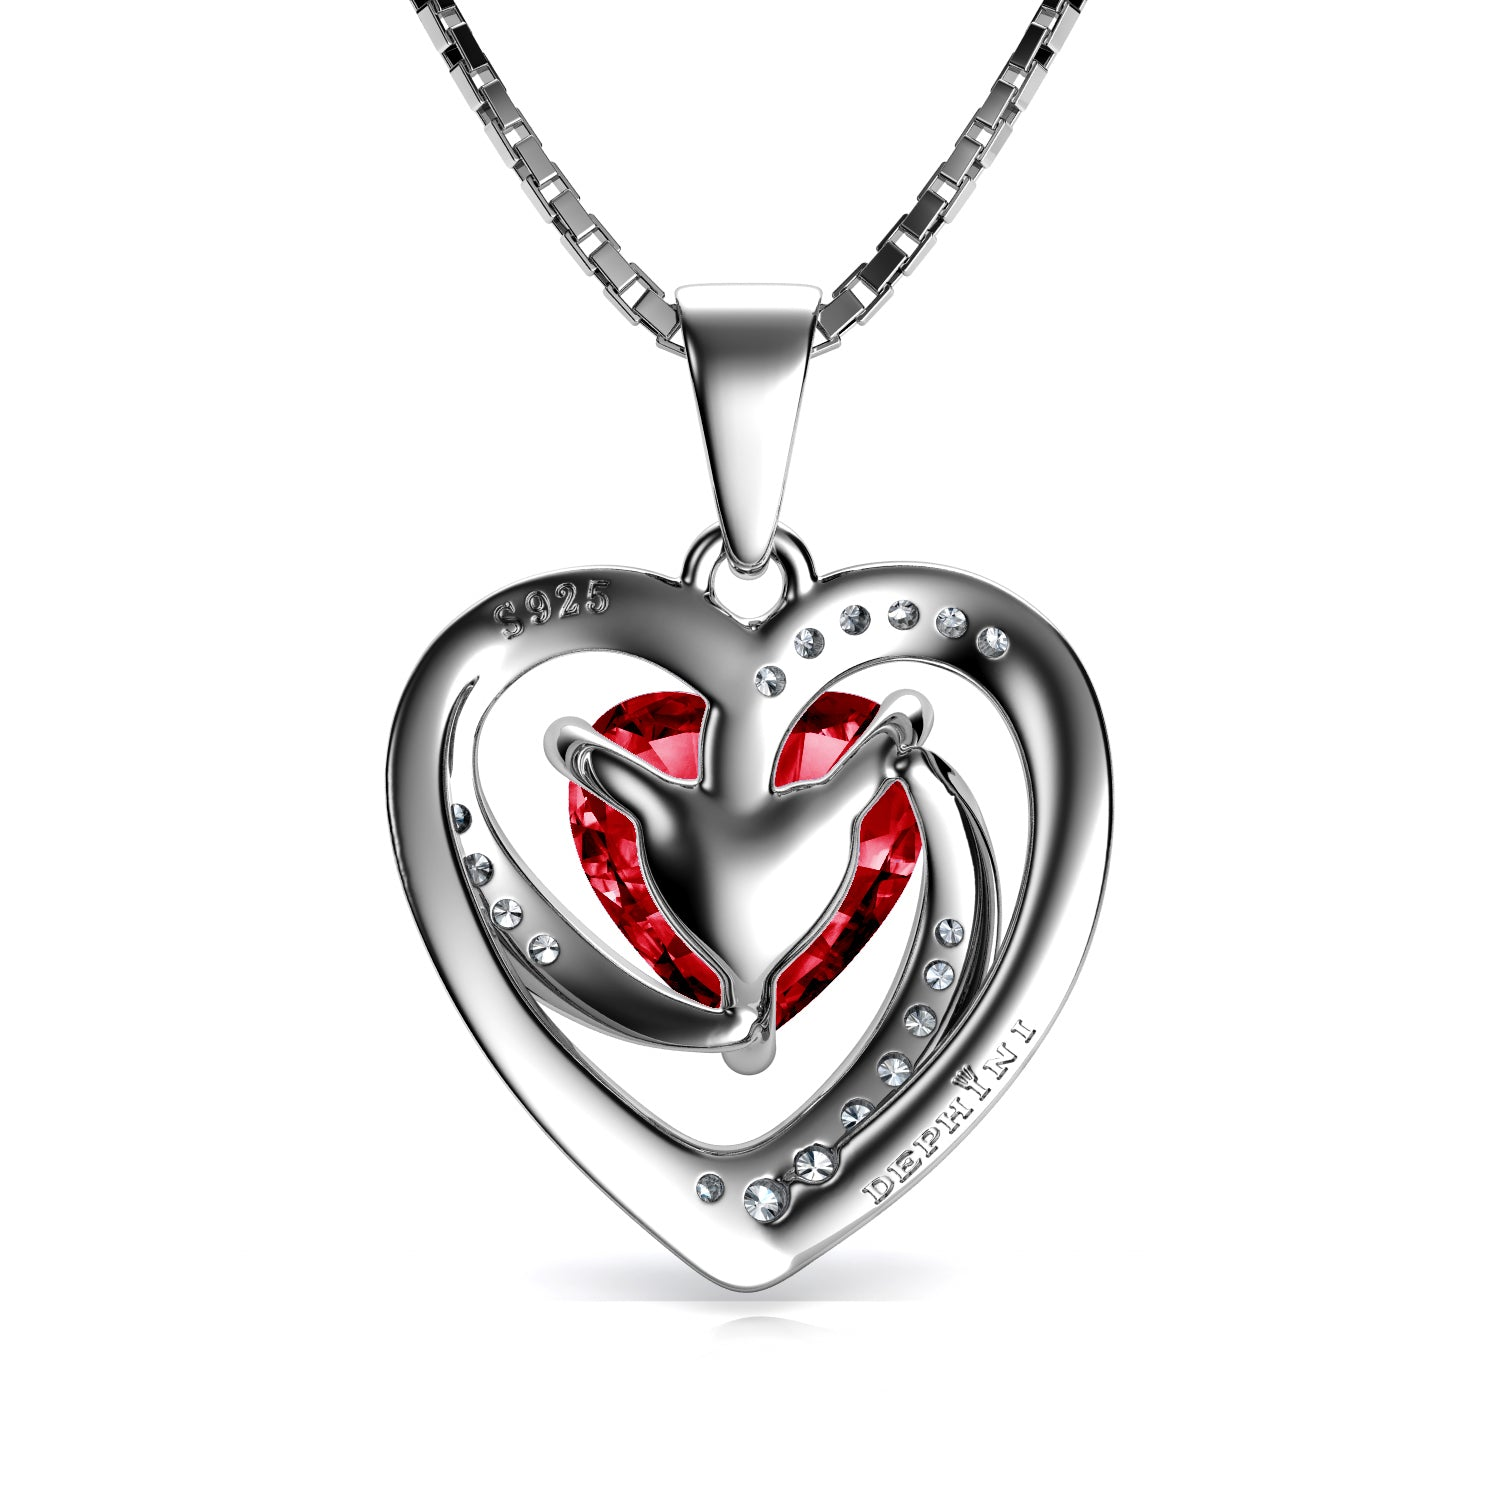 DEPHINI Red Heart Necklace - 925 Sterling Silver Heart